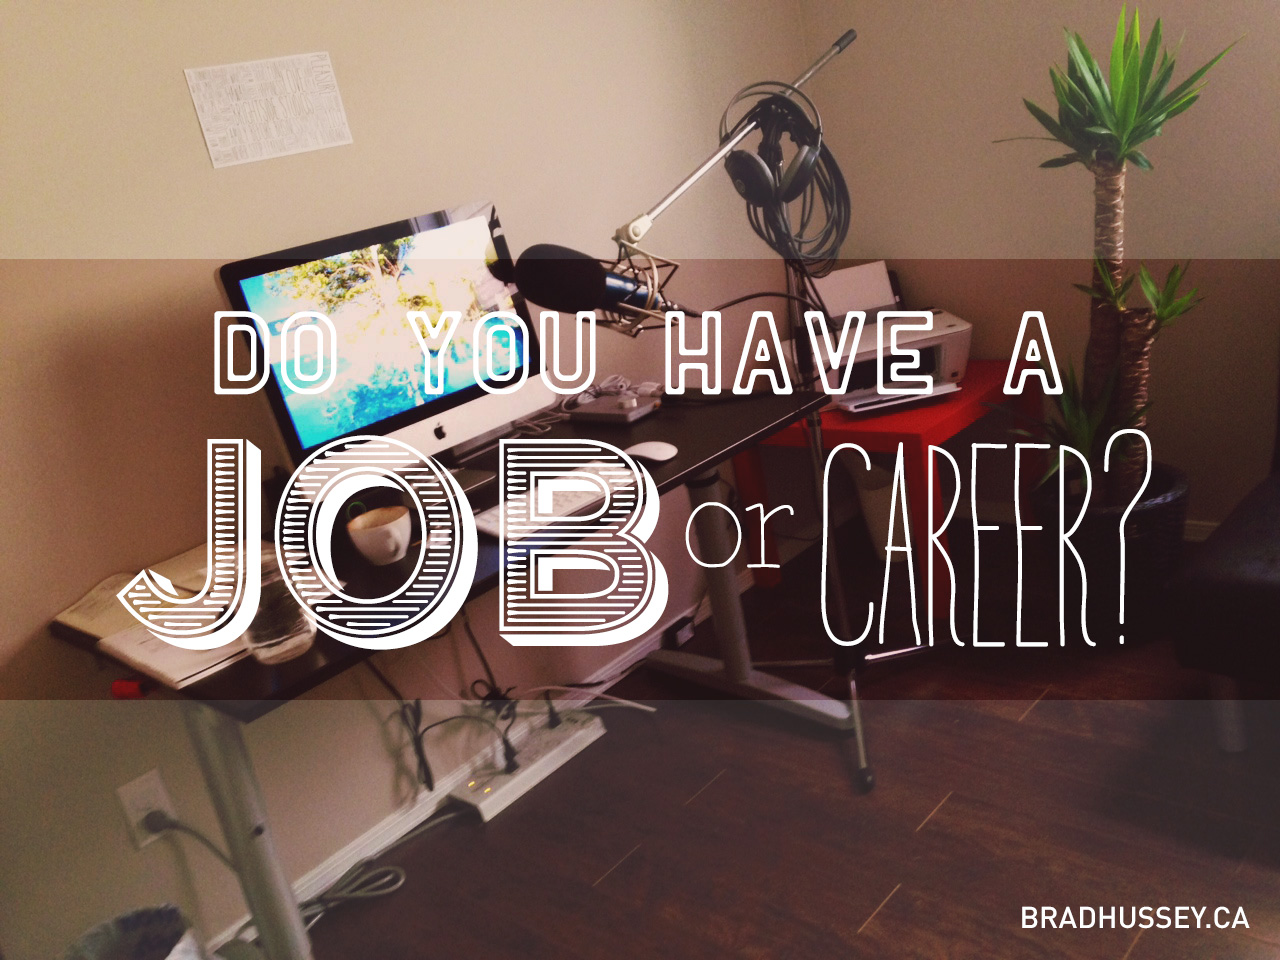 job vs career archives brad hussey do you have a job or a career